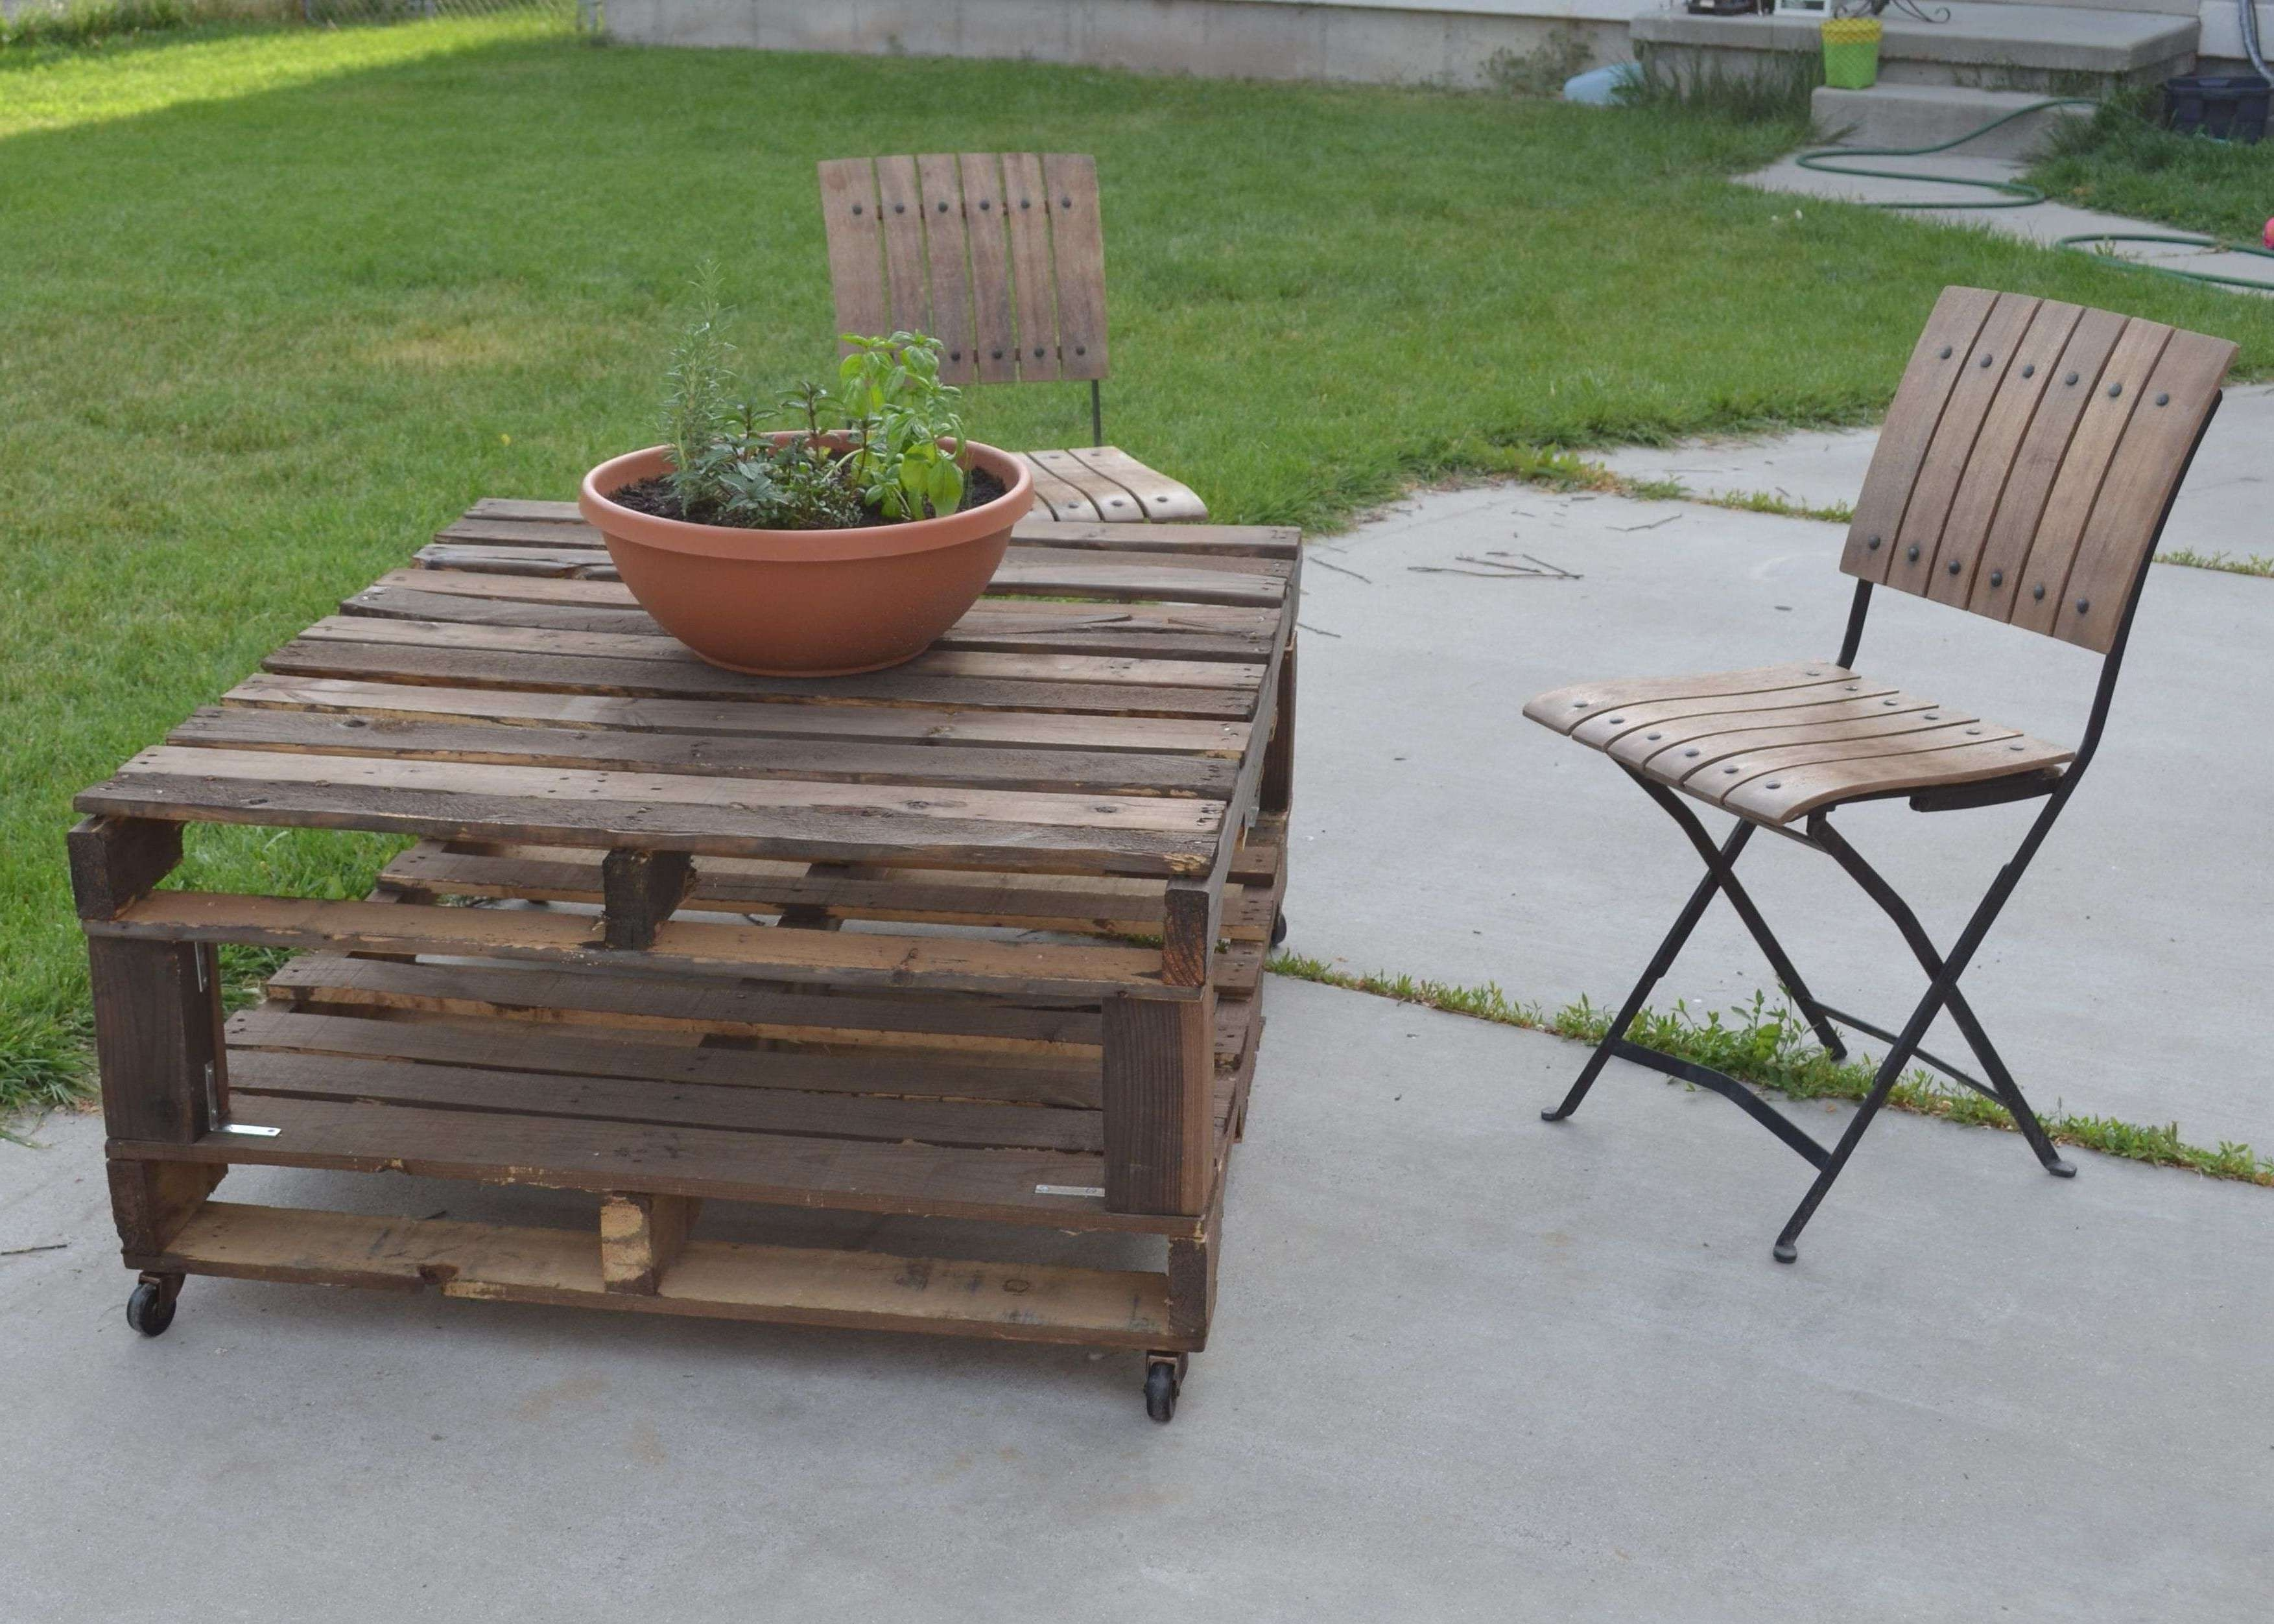 Famous Wooden Garden Coffee Tables Throughout Diy Outdoor Wood Coffee Table Using Reclaimed Wood And Wheels With (View 5 of 20)